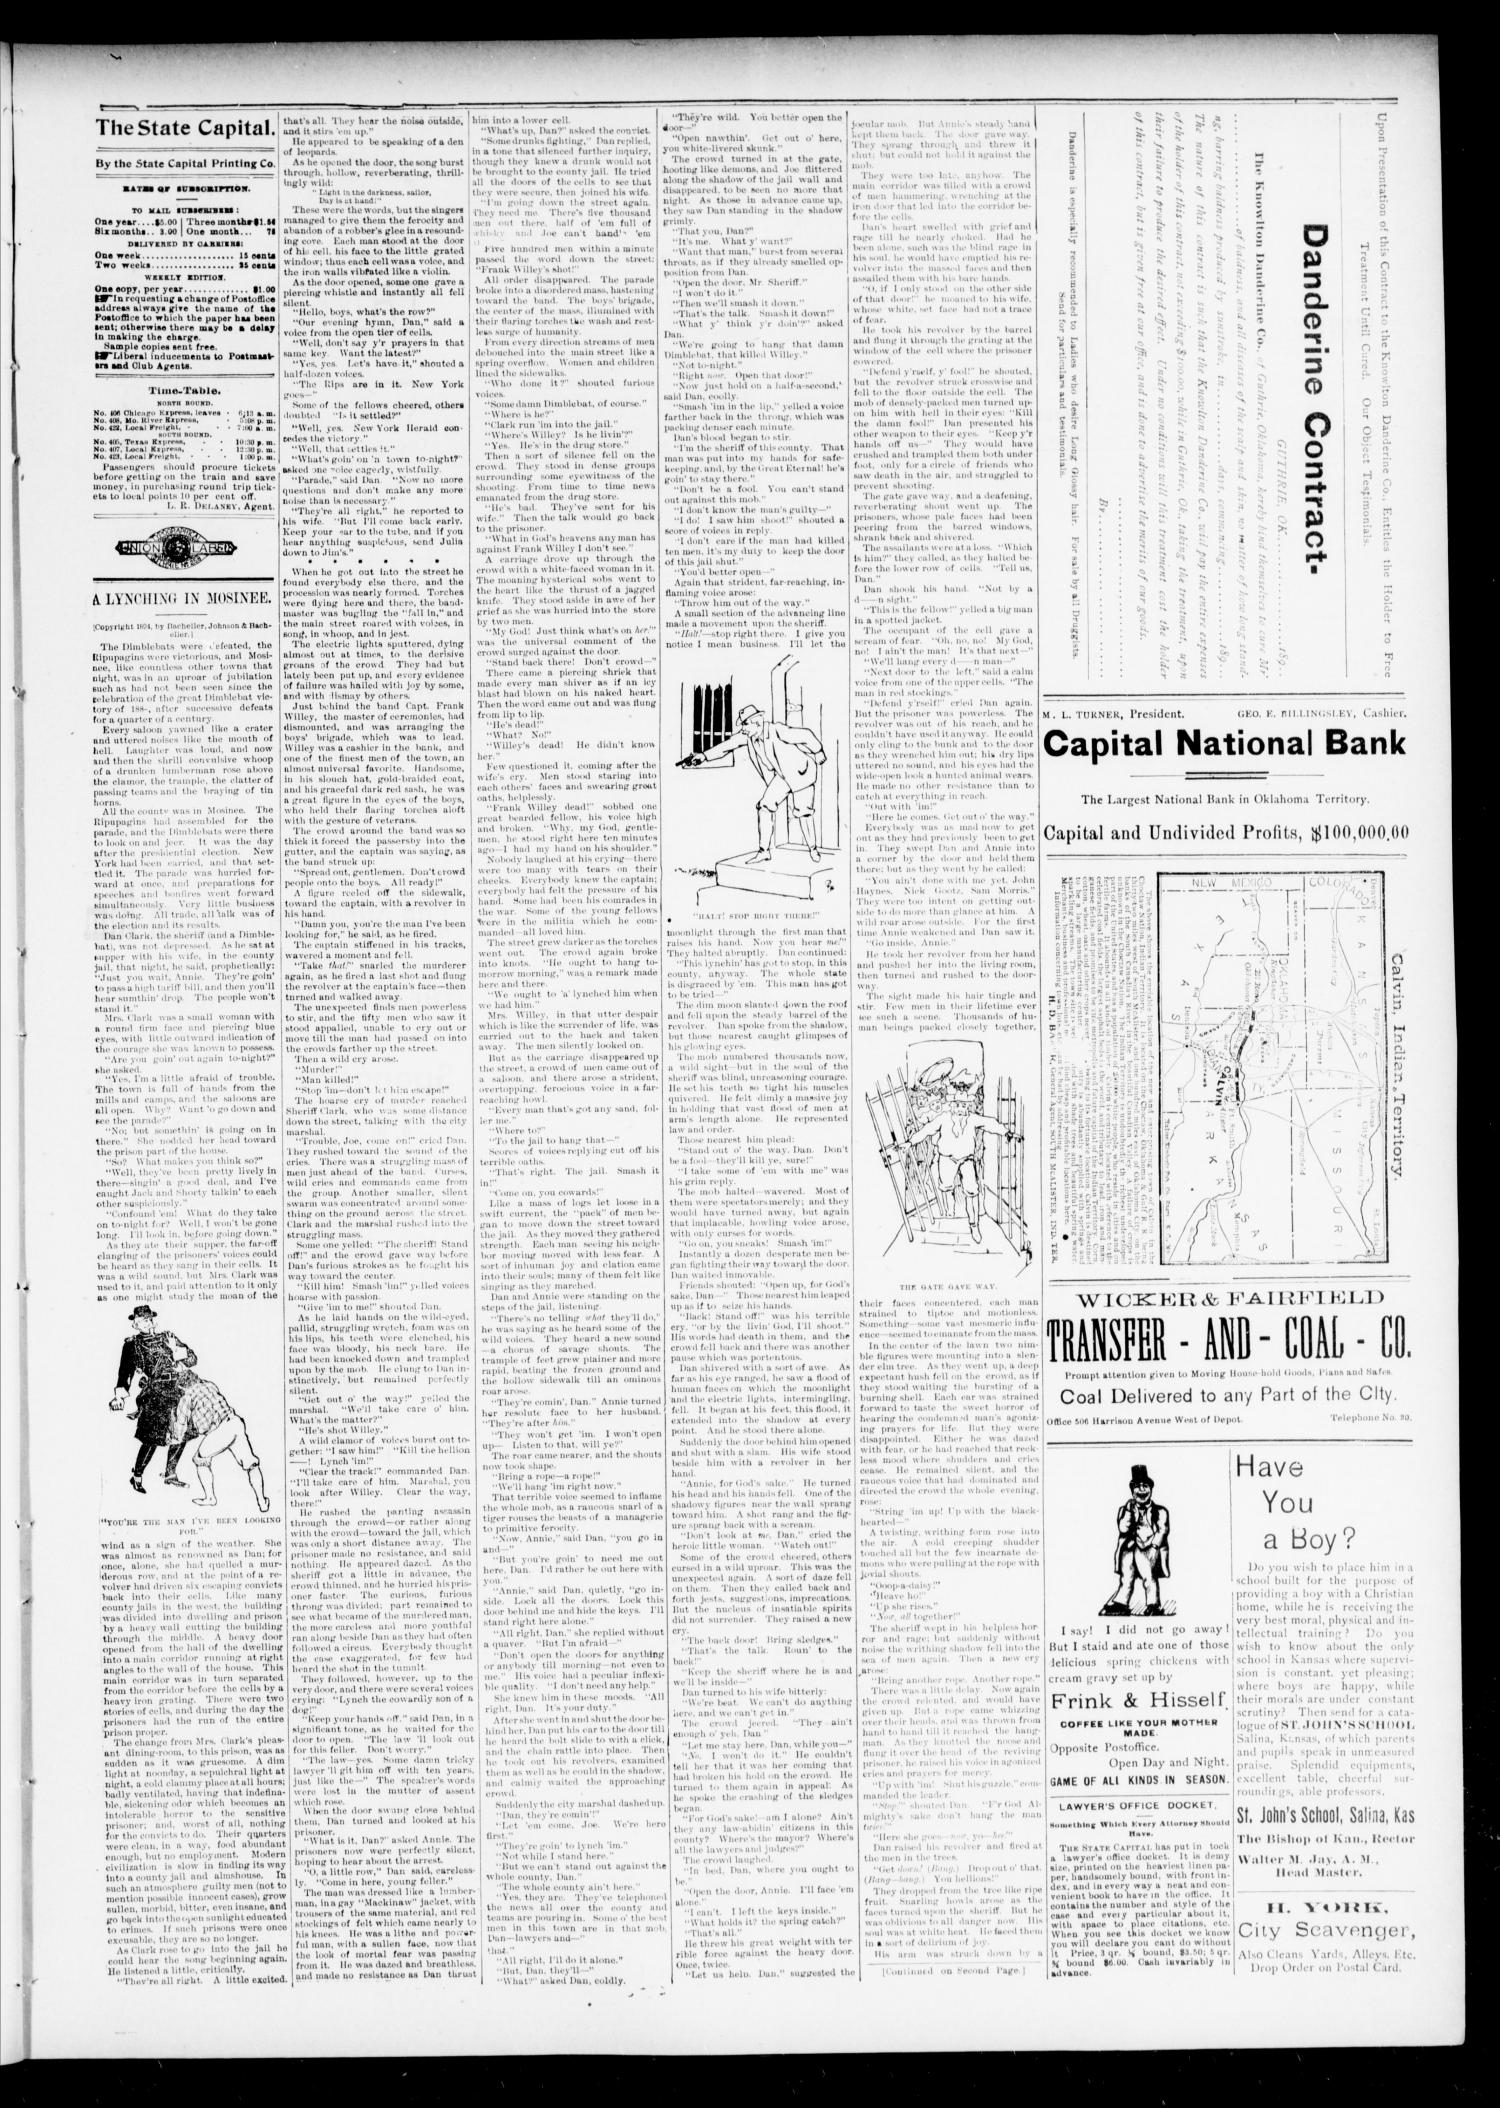 The Daily Oklahoma State Capital. (Guthrie, Okla.), Vol. 7, No. 89, Ed. 1 Monday, August 5, 1895                                                                                                      [Sequence #]: 3 of 6